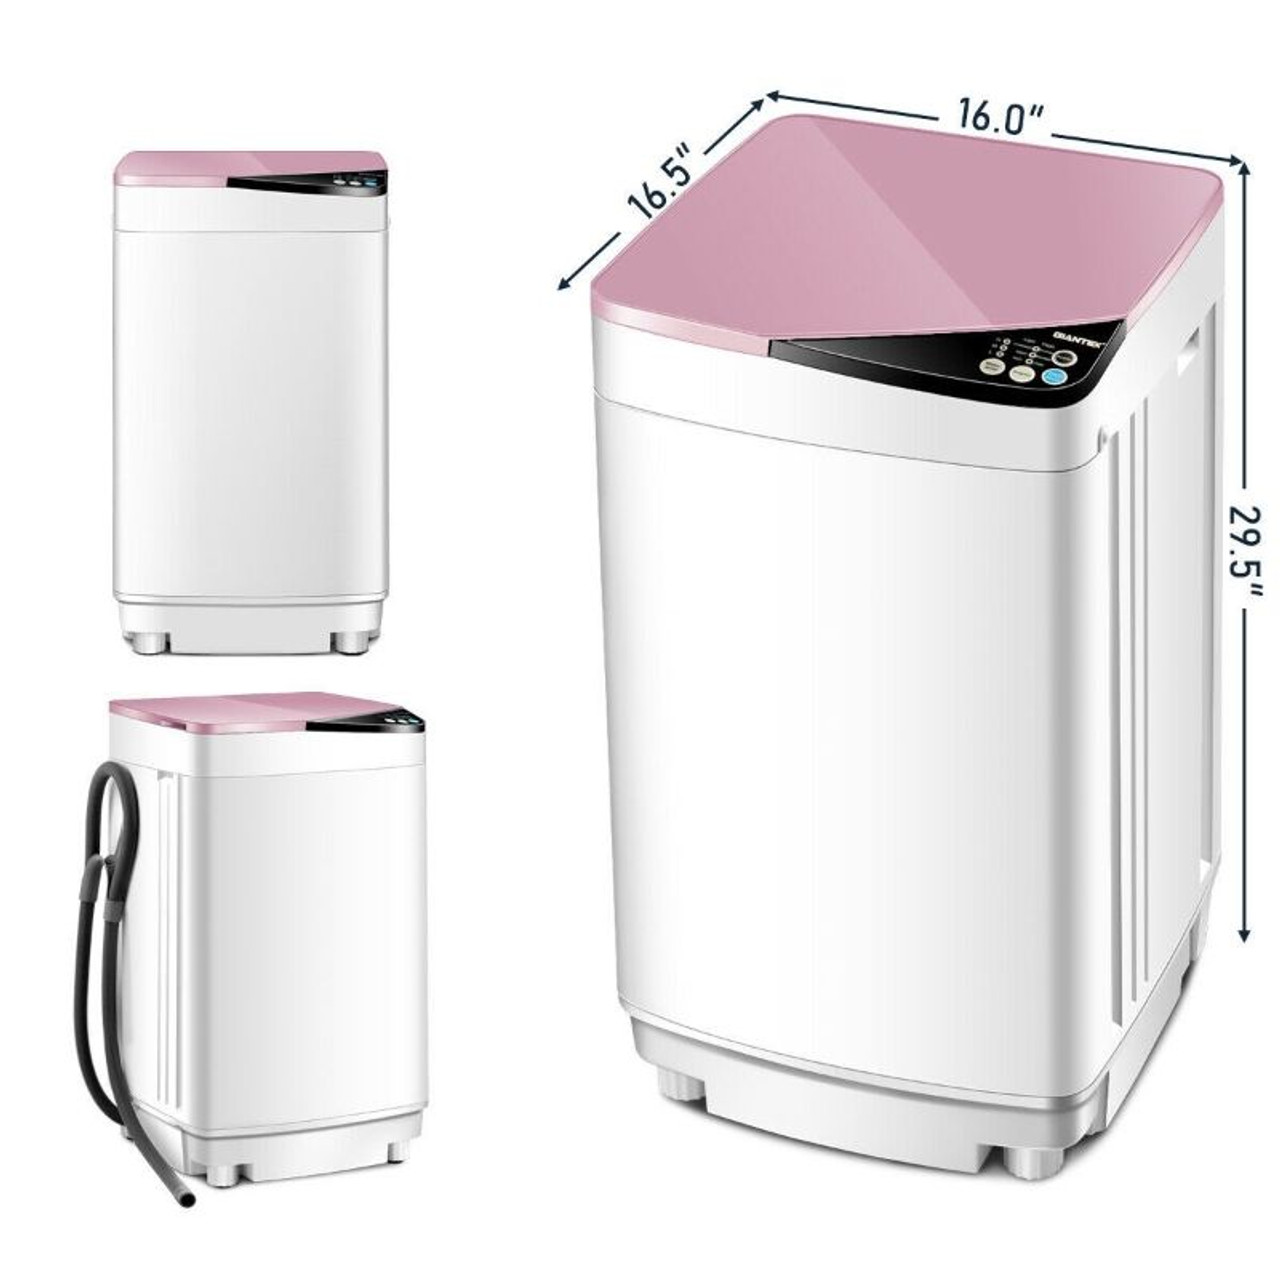 Full-automatic 7.7lbs Germicidal Washing Machine Washer and Spinner